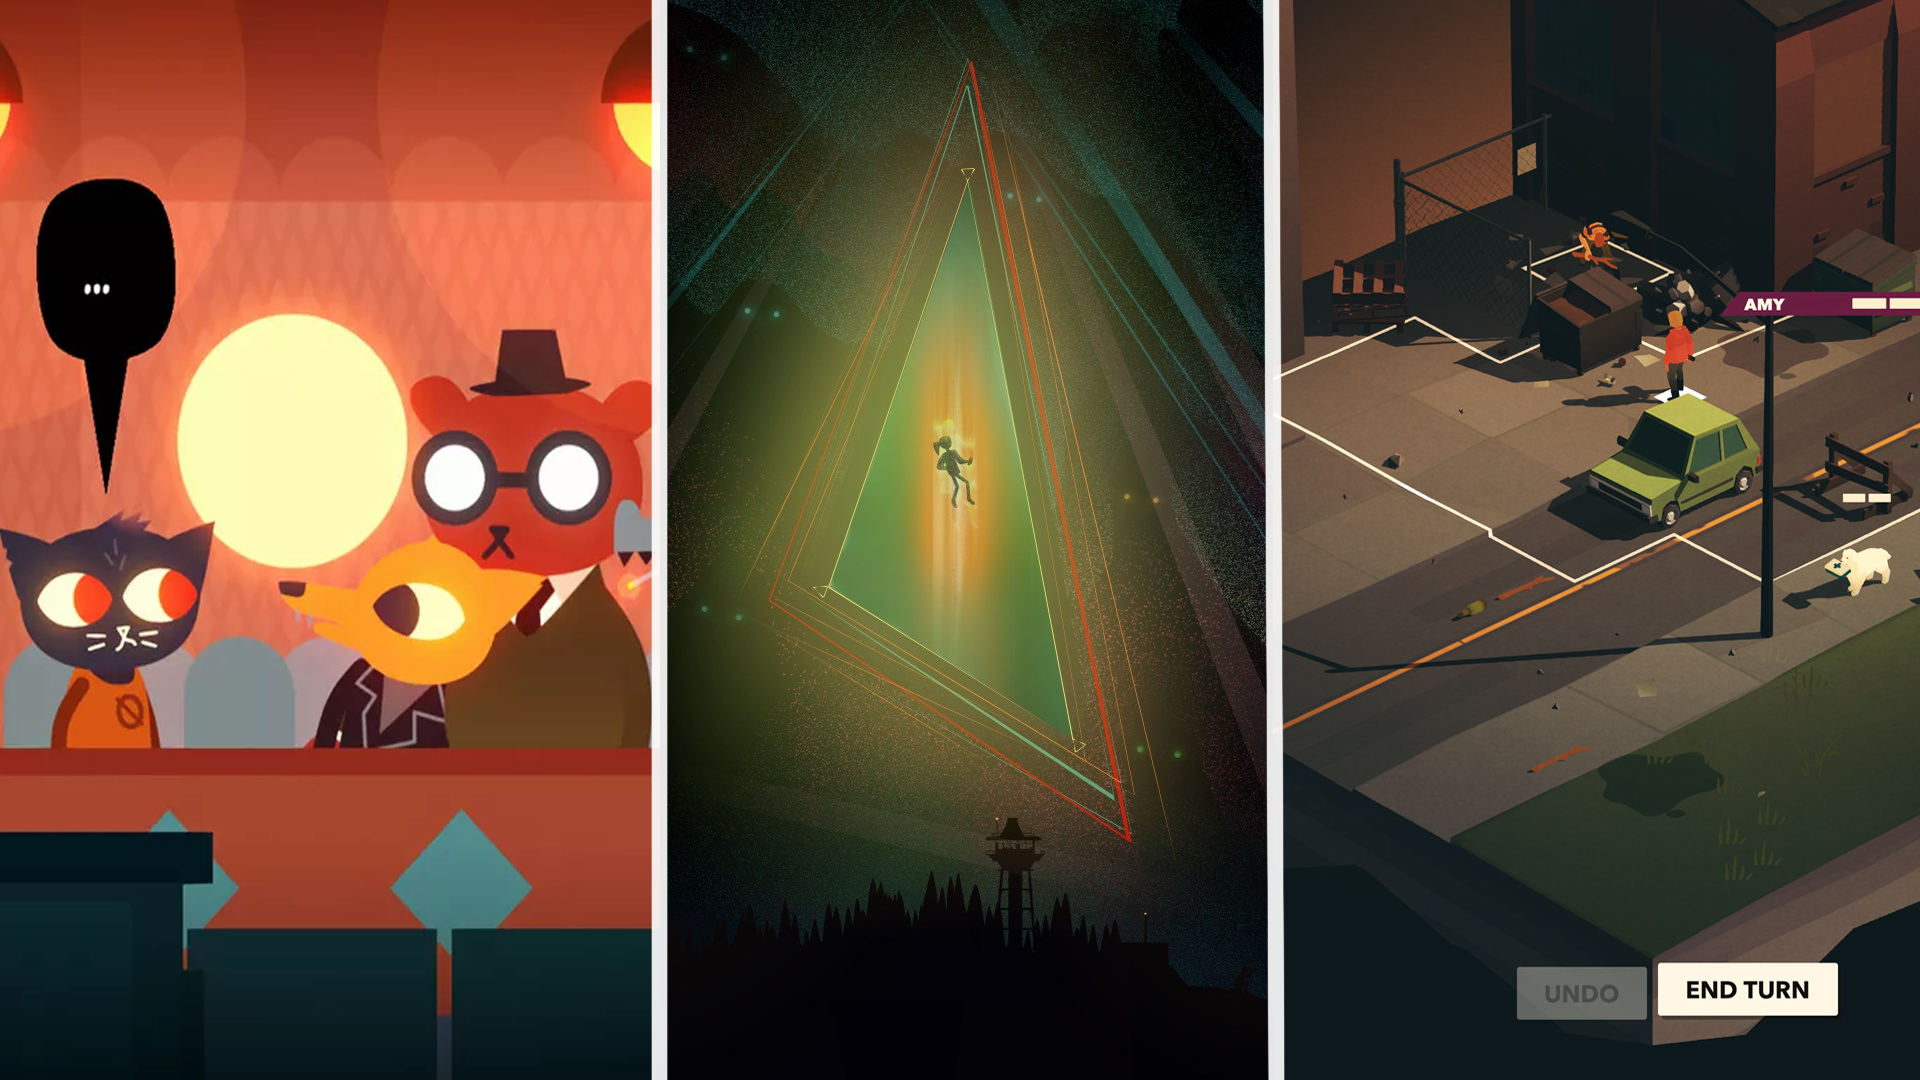 Itch.io Is Selling A Bundle Of Over 700+ Games For $7 To Support Racial Justice And Equality